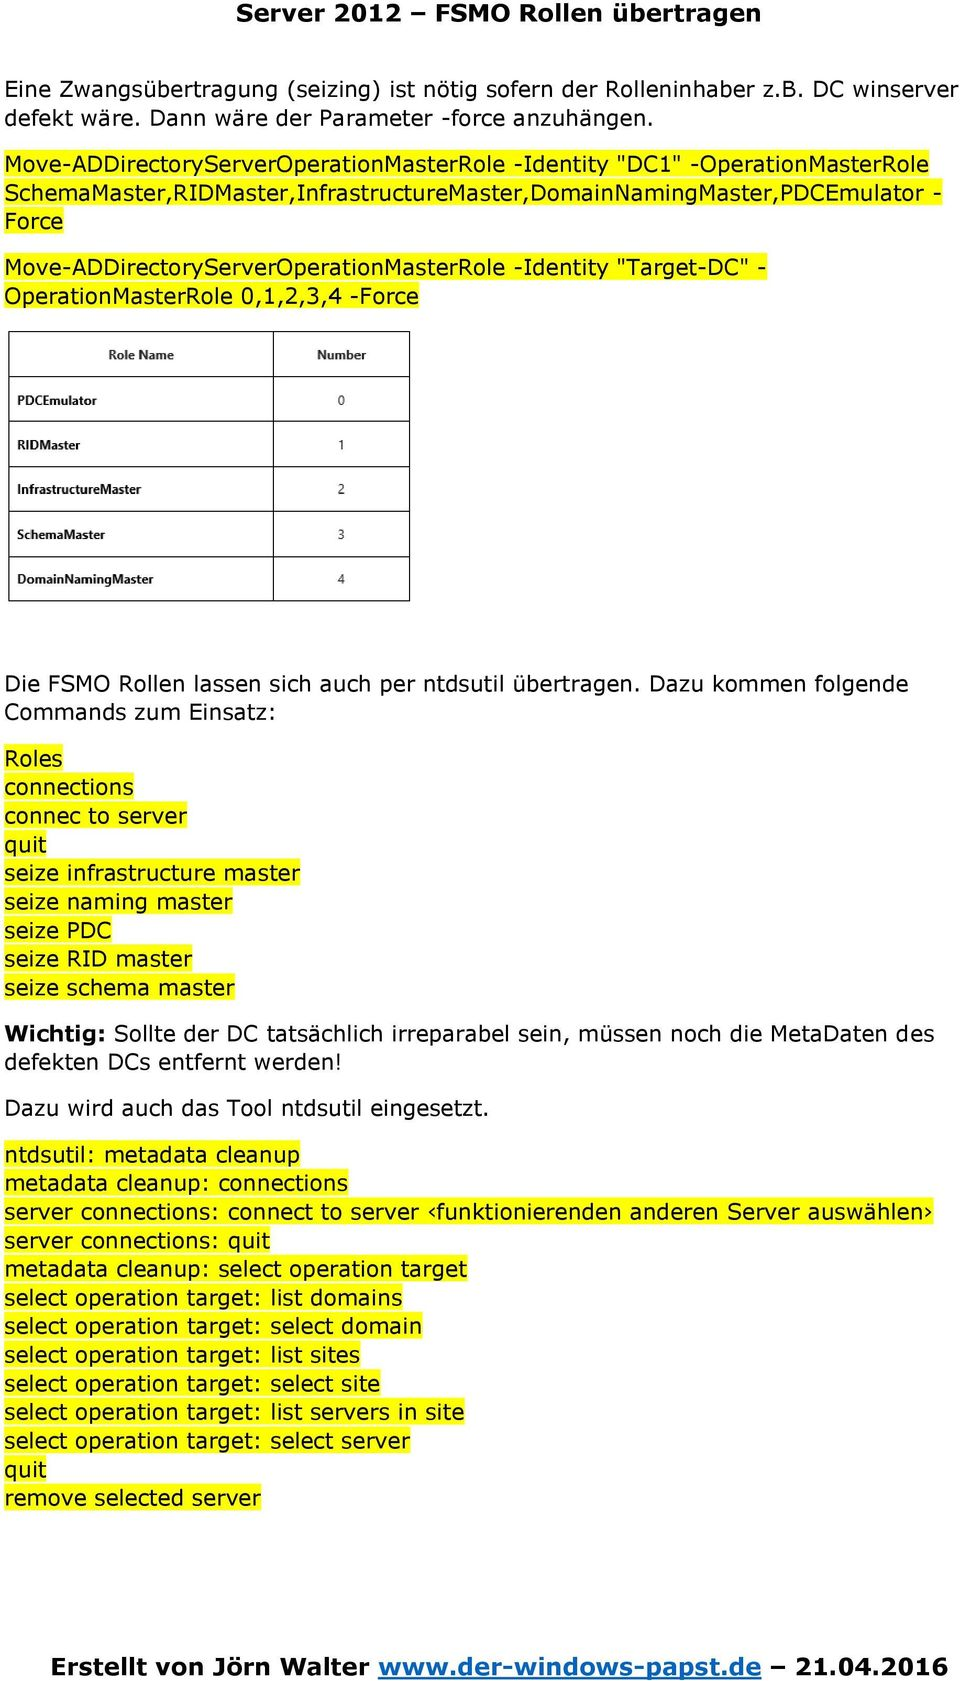 "Move-ADDirectoryServerOperationMasterRole -Identity ""Target-DC"" - OperationMasterRole 0,1,2,3,4 -Force Die FSMO Rollen lassen sich auch per ntdsutil übertragen."